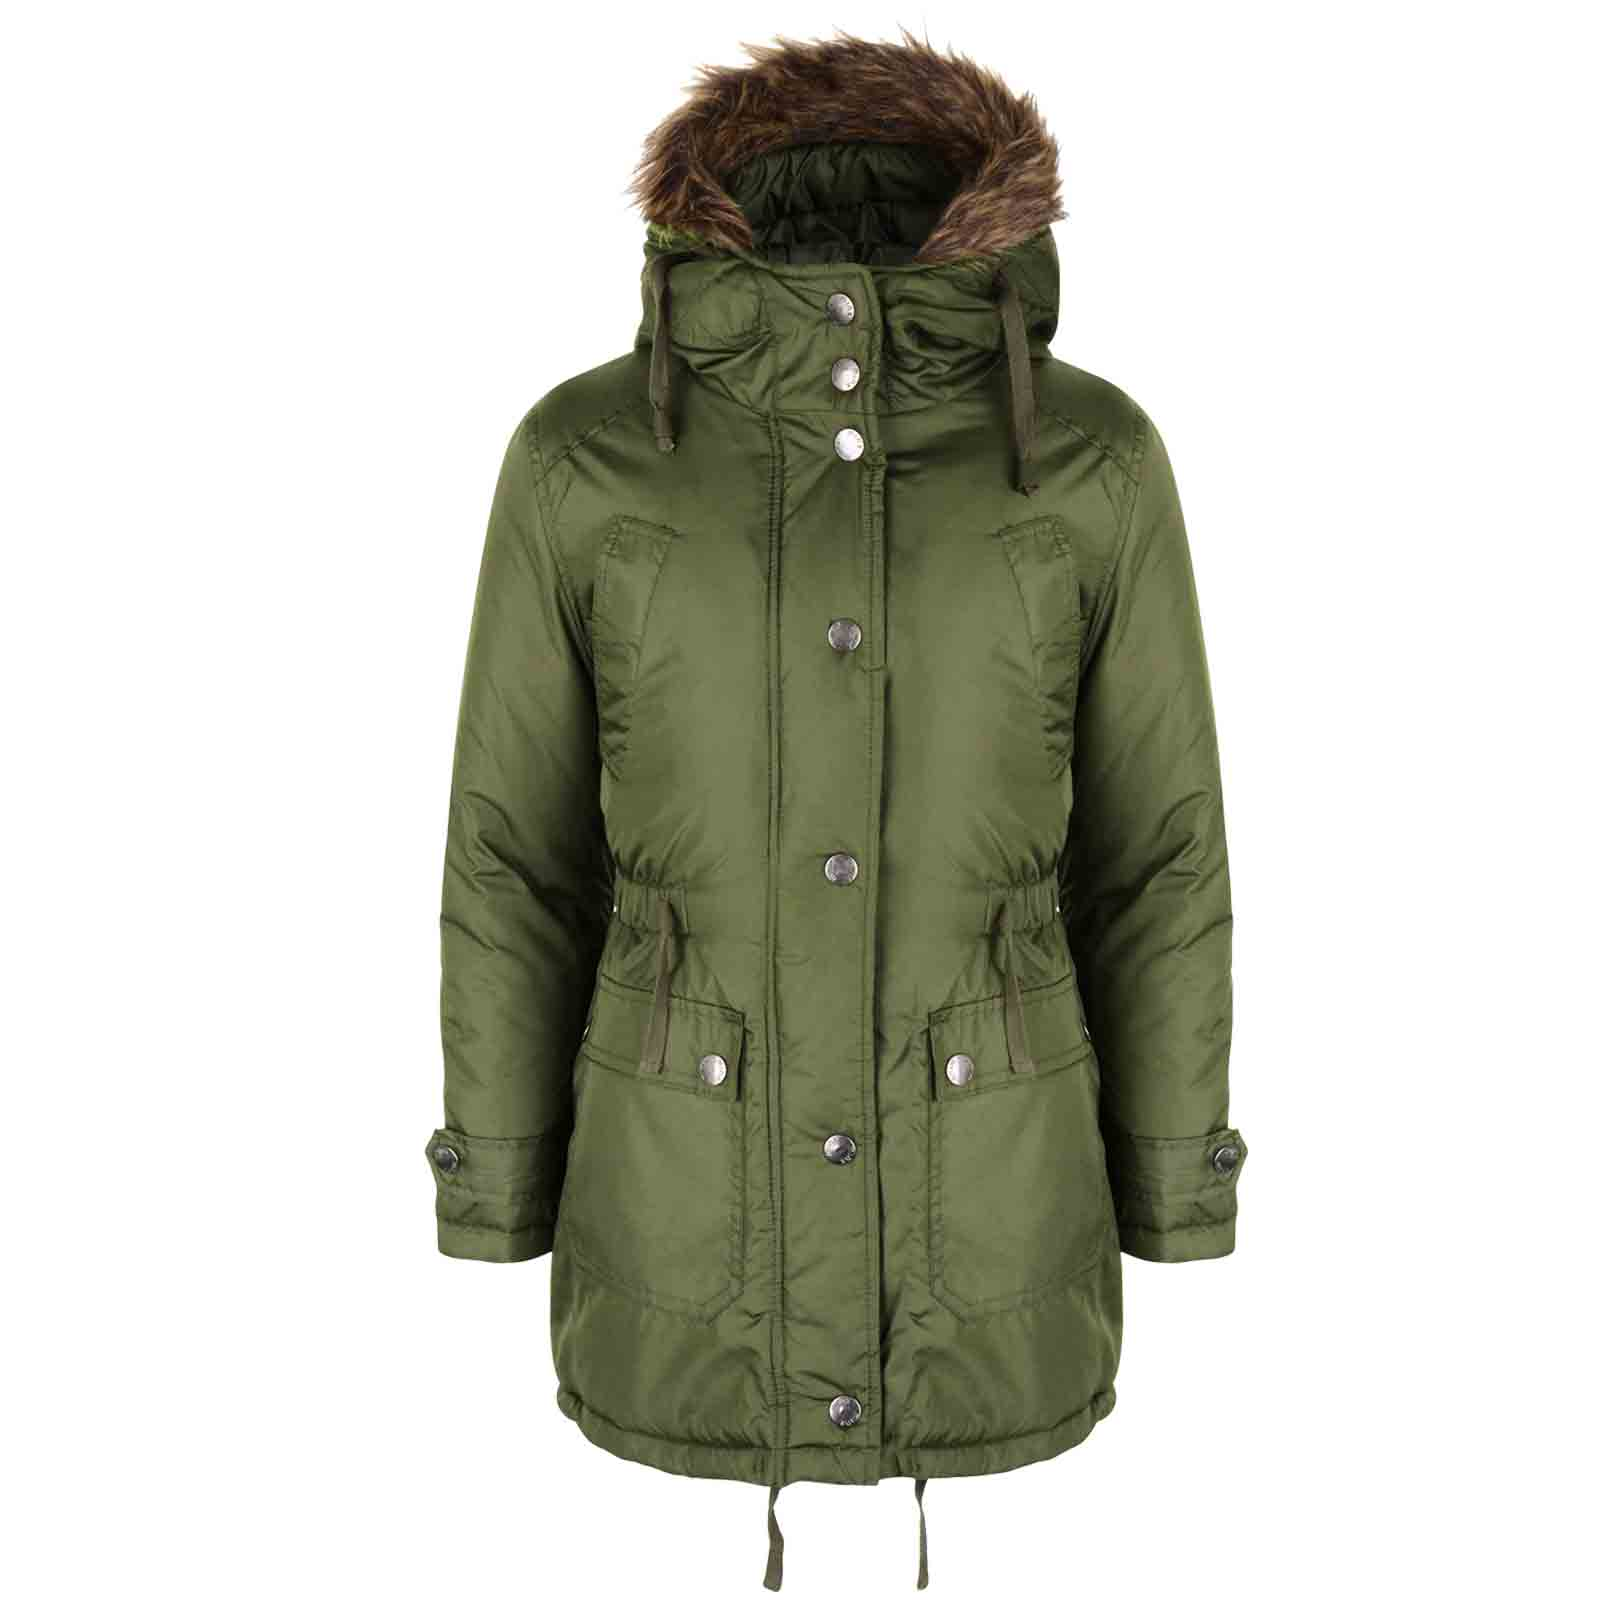 GIRLS PARKA JACKET KIDS PADDED FAUX FUR TRIM HOODED COAT AGE 7 8 9 ...